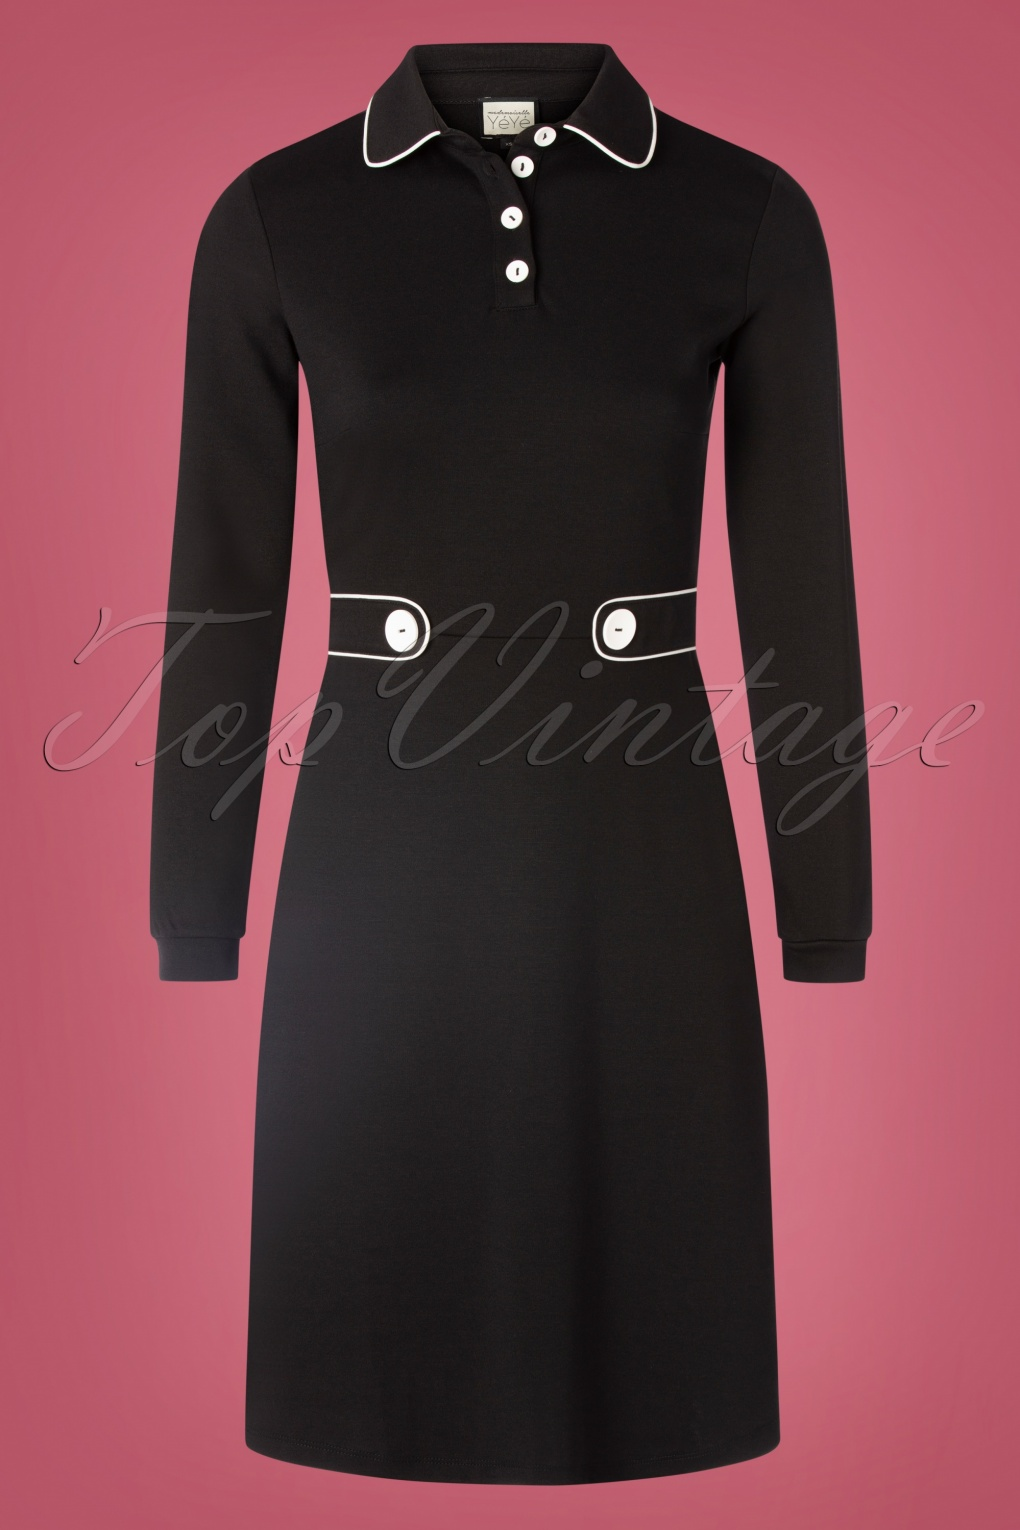 1960s Style Dresses, Clothing, Shoes UK 60s There She Goes Dress in Black £93.45 AT vintagedancer.com